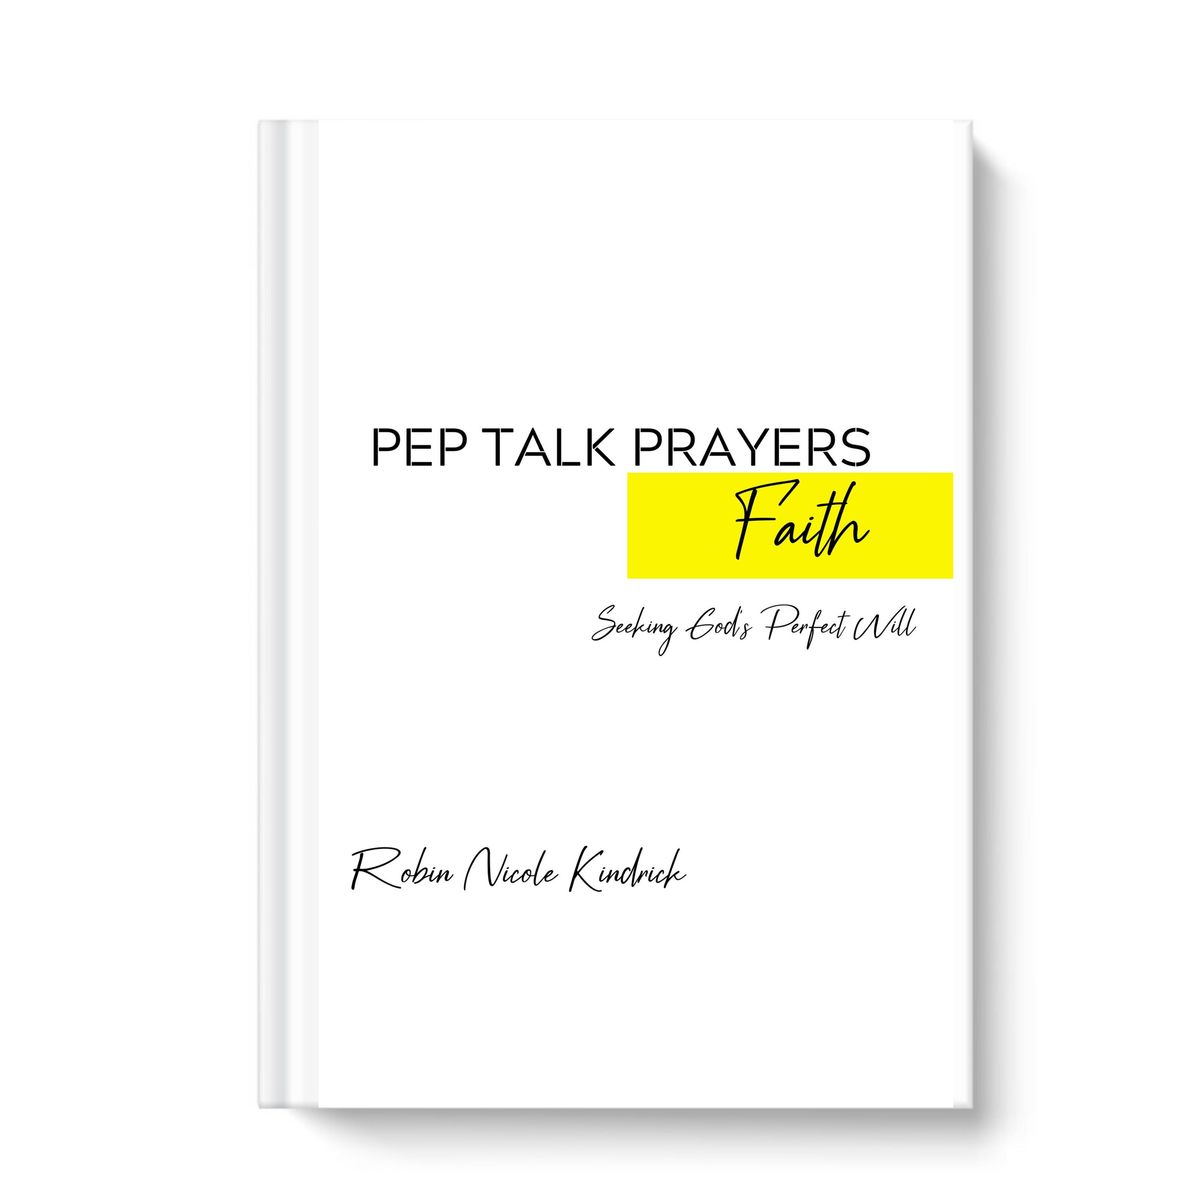 PEP TALK PRAYERS: ON FAITH - product image